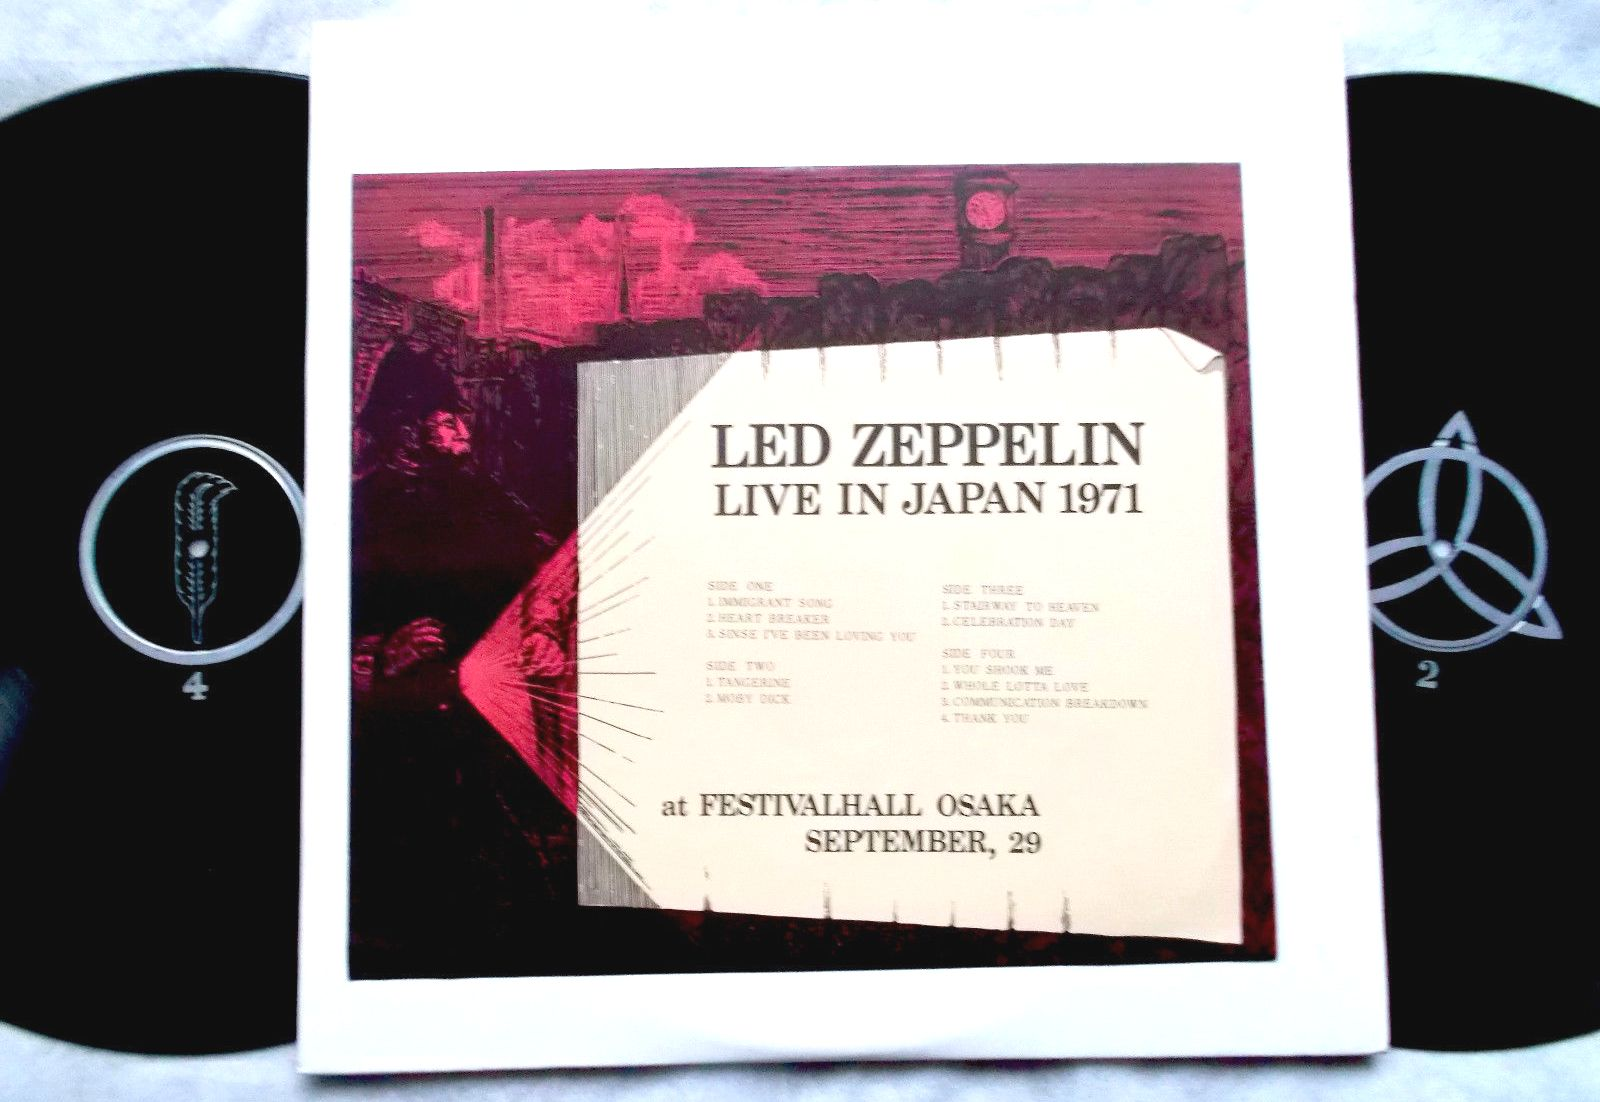 Led Zeppelin Osaka 1971 soundboard | THE AMAZING KORNYFONE LABEL